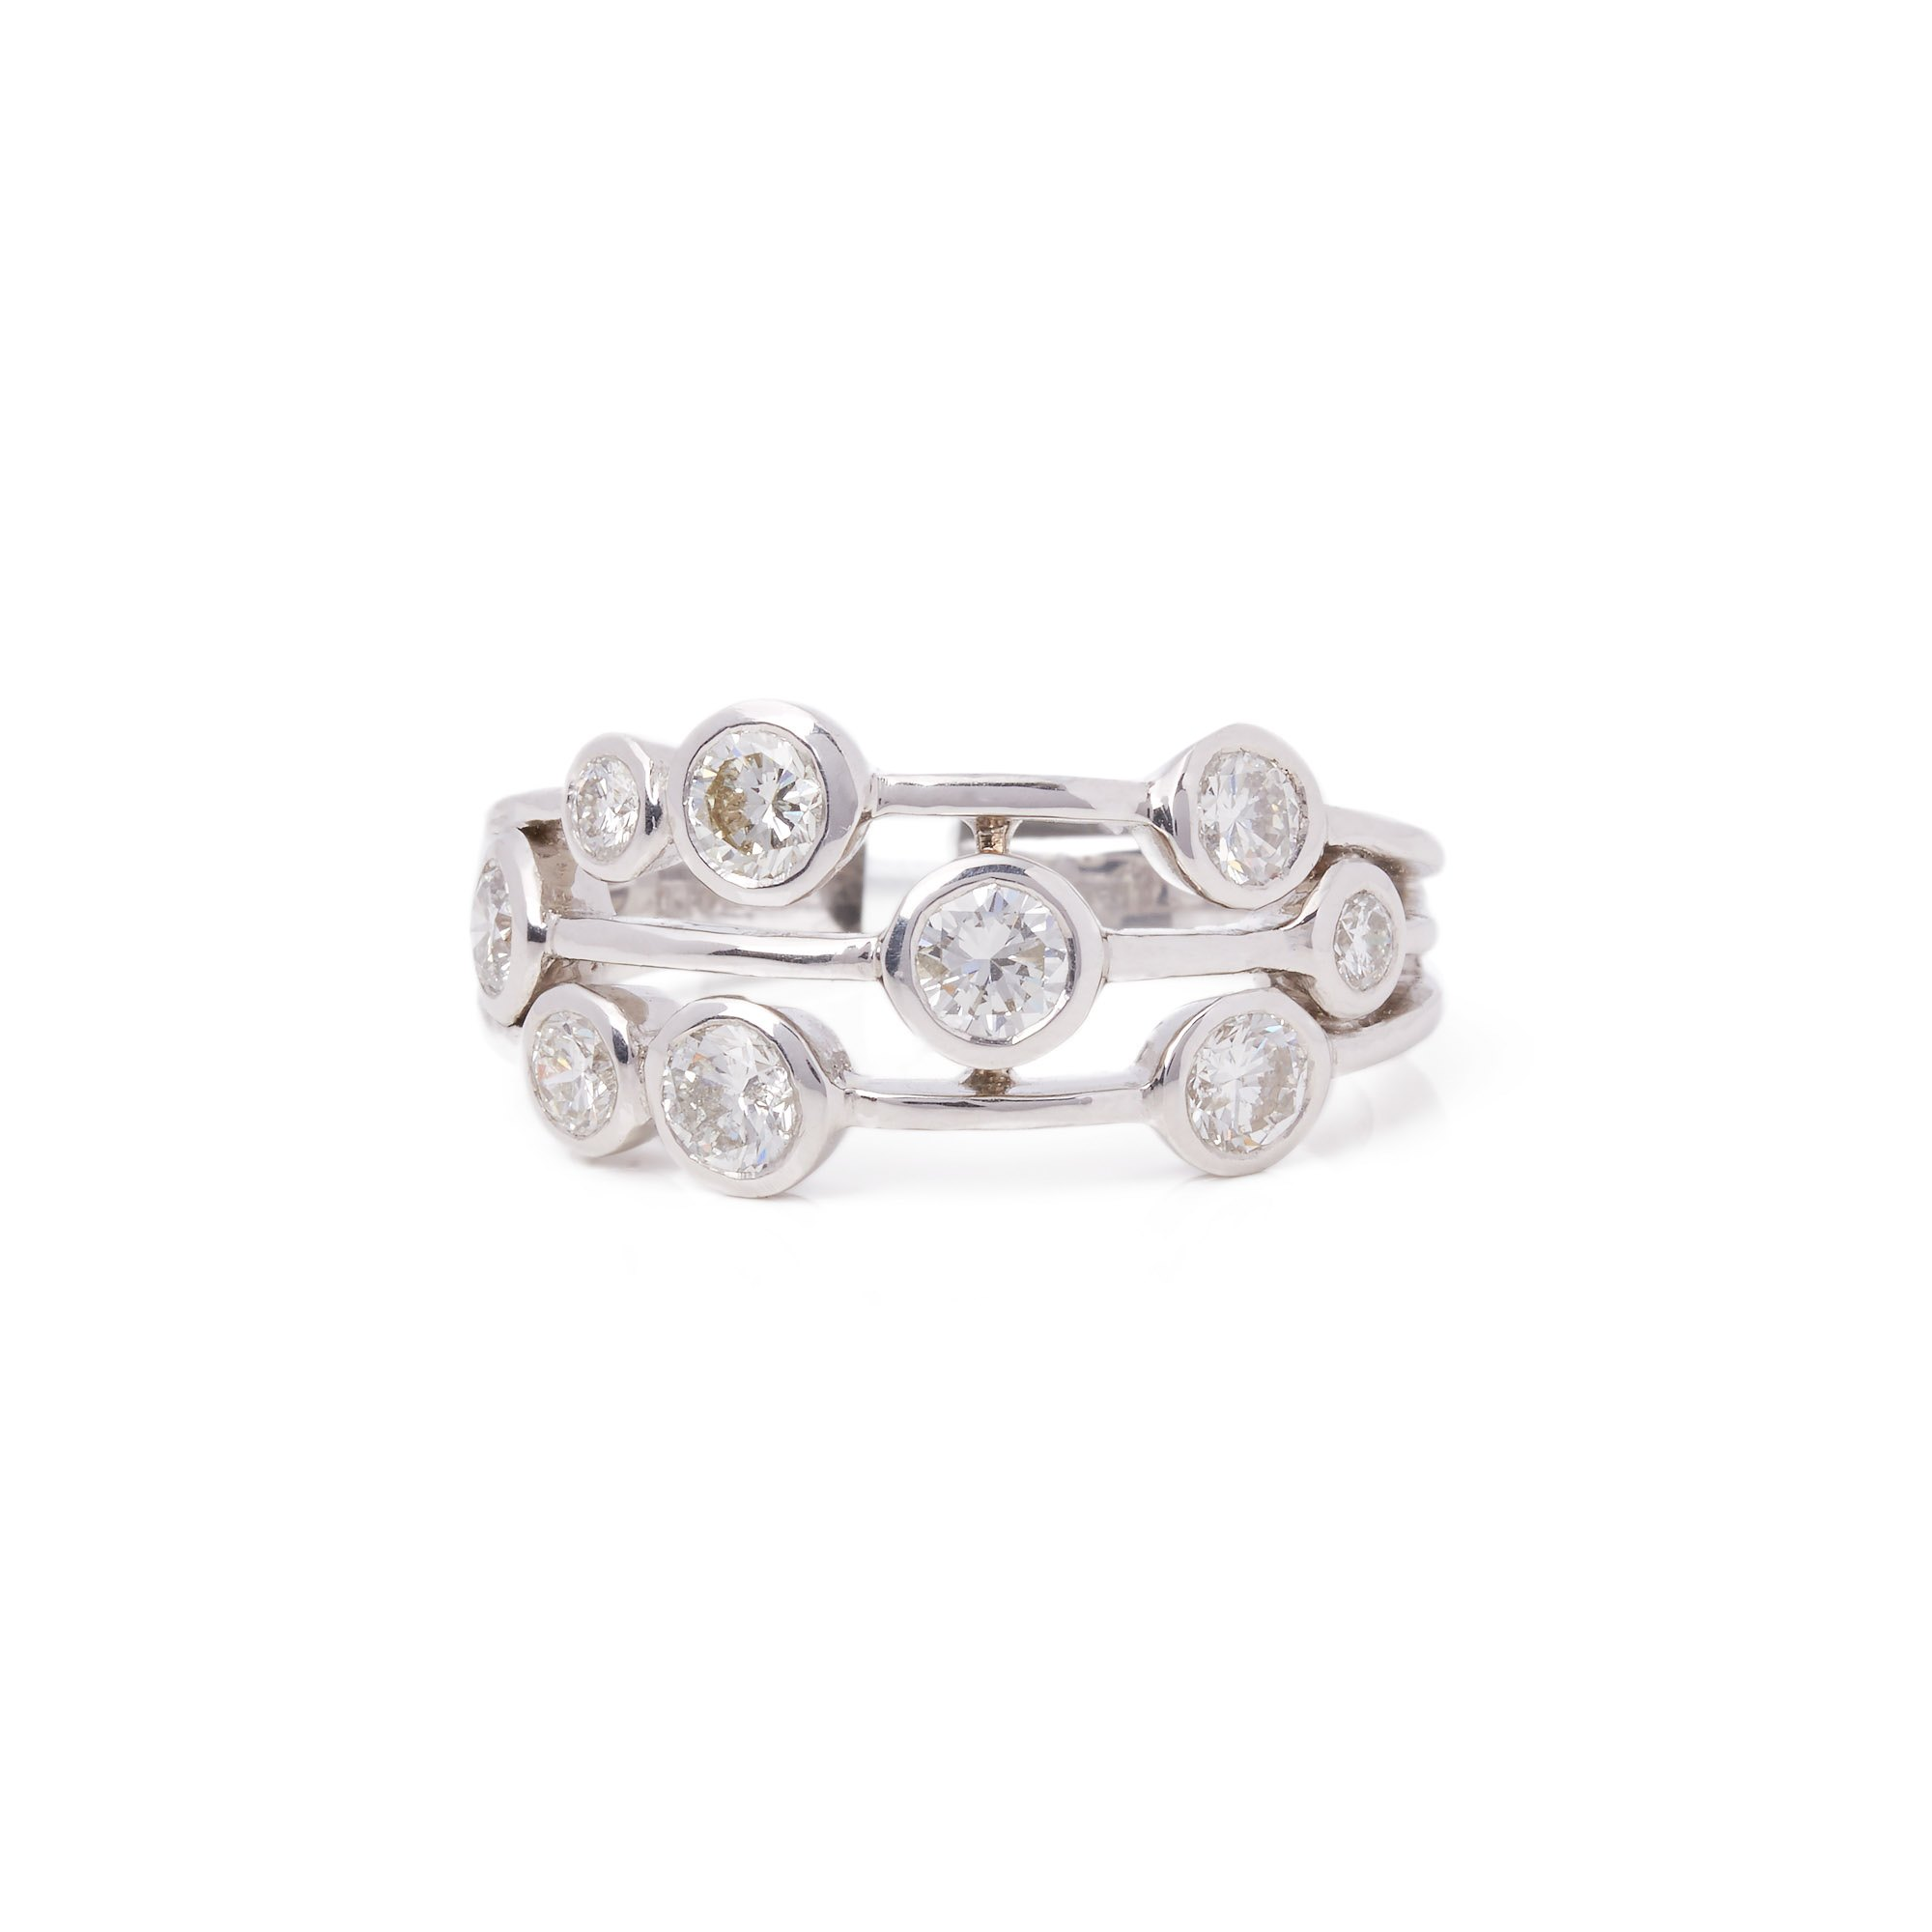 Diamond 18k White Gold Round Brilliant Cut Multi Set Dress Ring 1.24cts